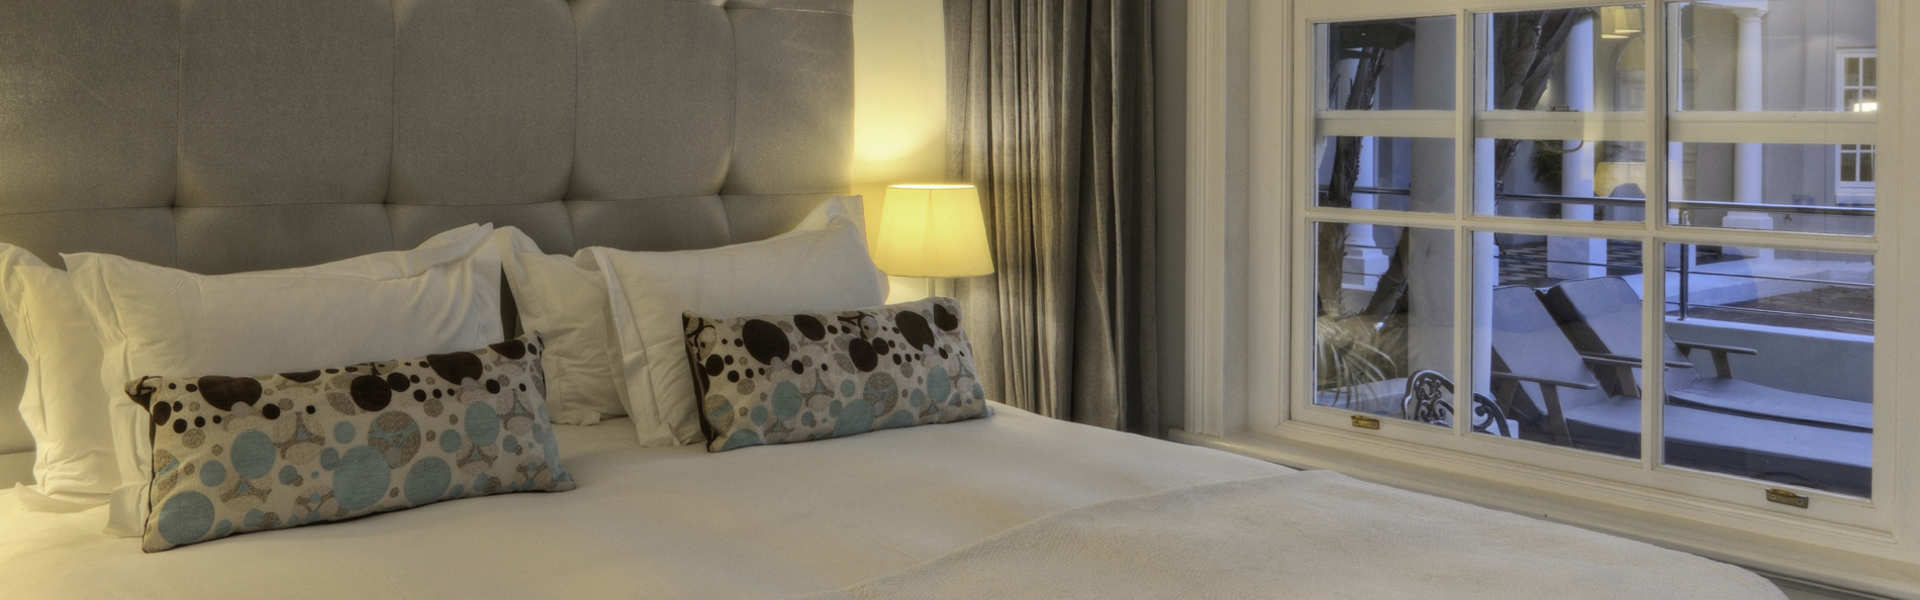 Central   Cape Towm  Accommodation   The Three Boutique Hotel Luxury Double